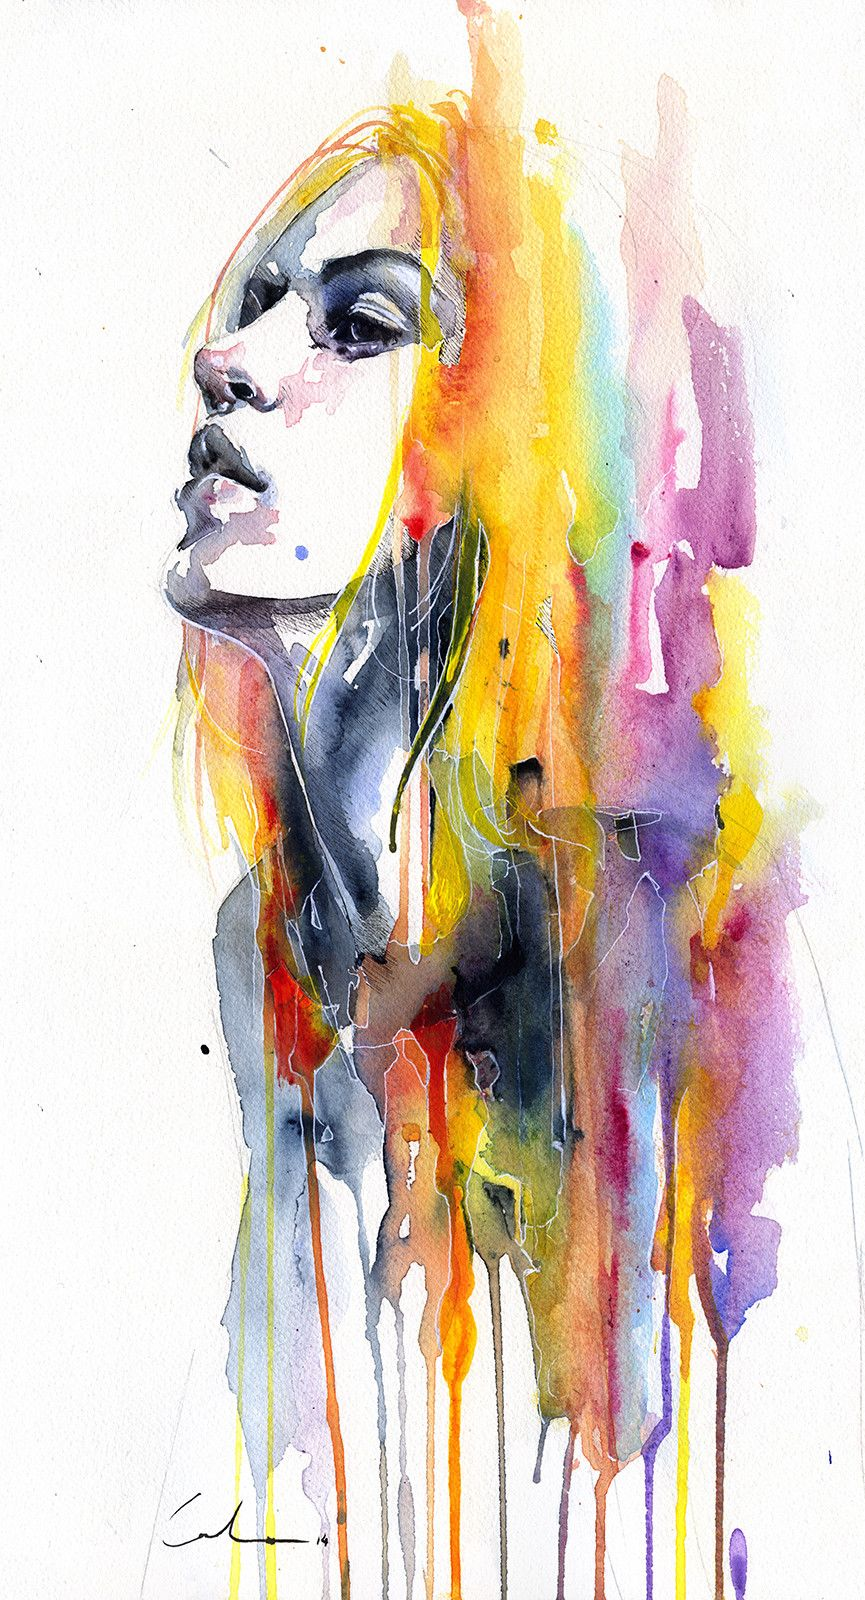 Choking Hazard Contemporary Watercolor Portrait Painting By